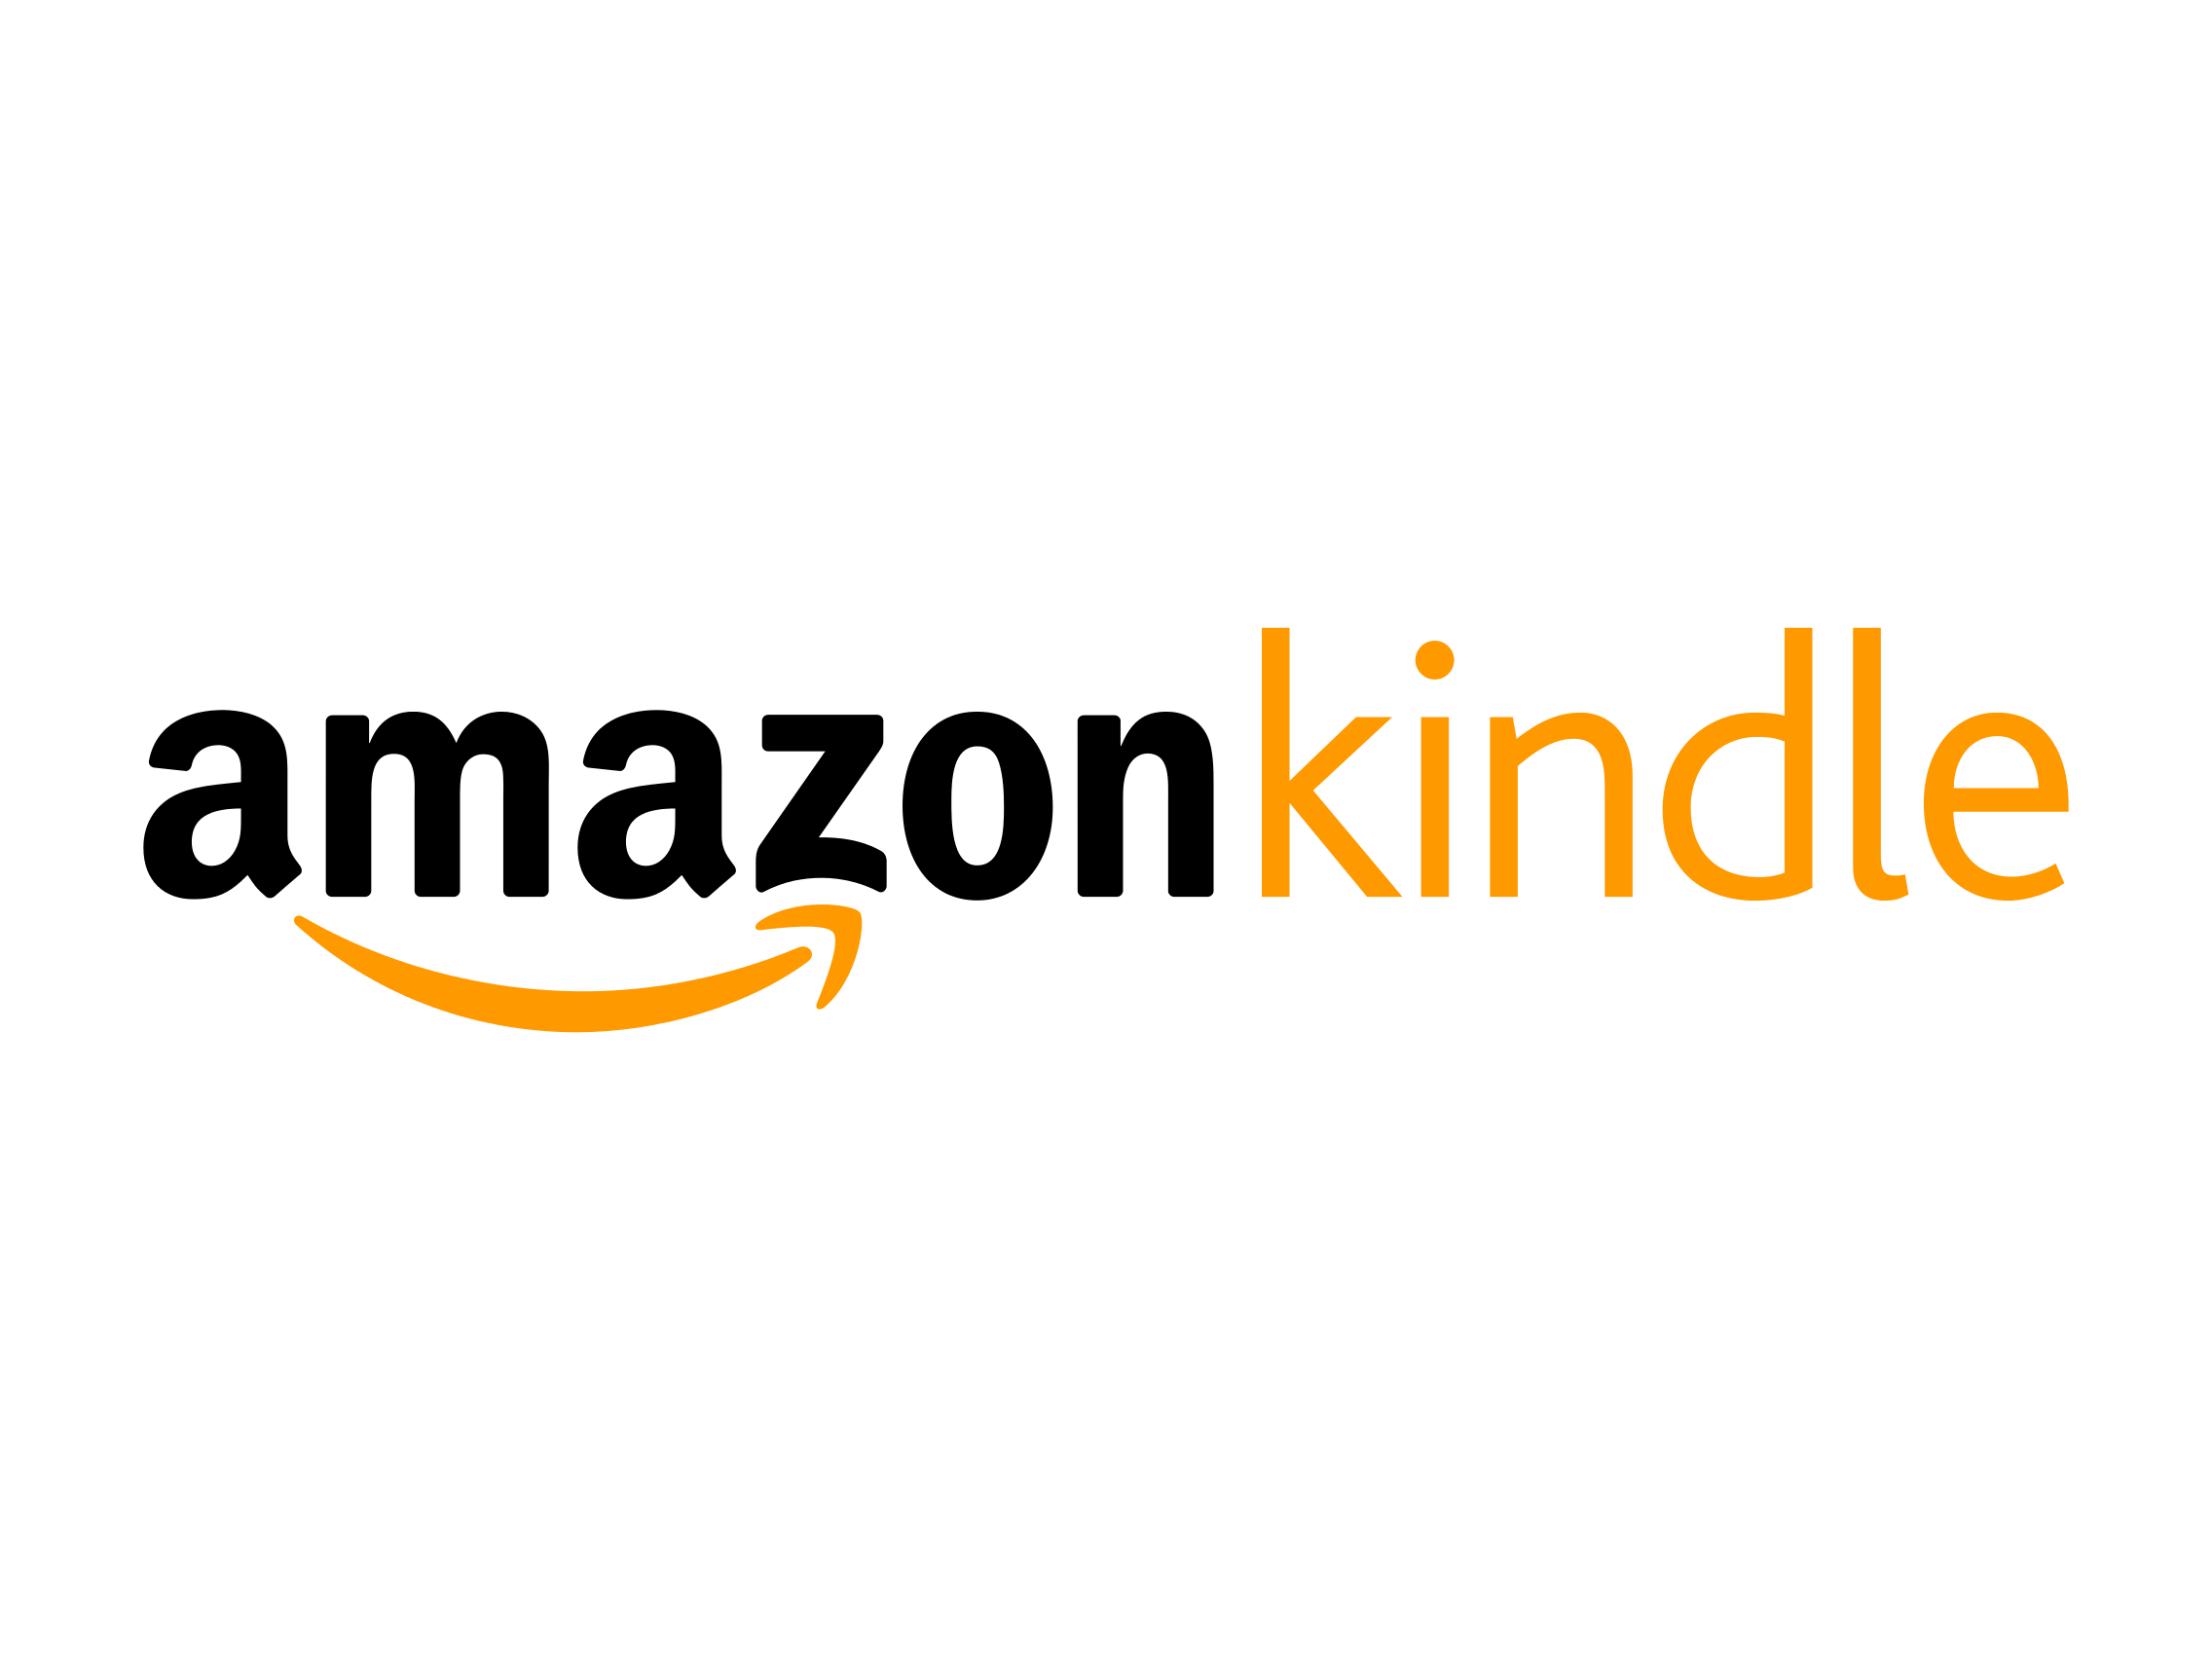 png 2272x1704 Kindle logo transparent background - Amazon Kindle PNG